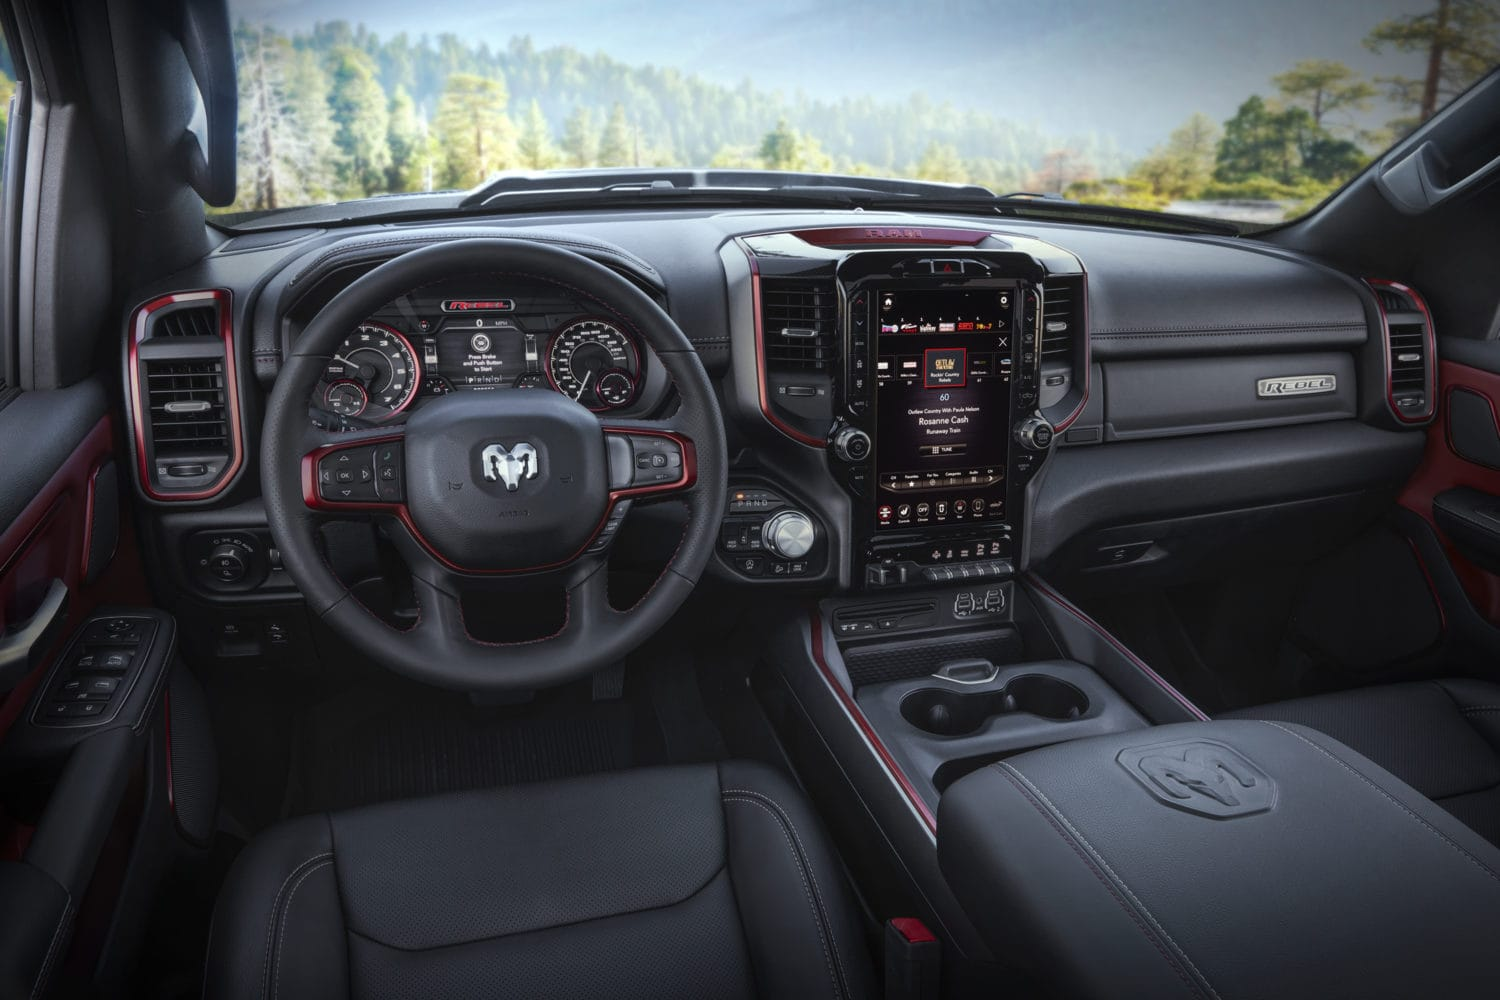 2019 Ram 1500 Rebel 12 Overall Interior Focus Daily News